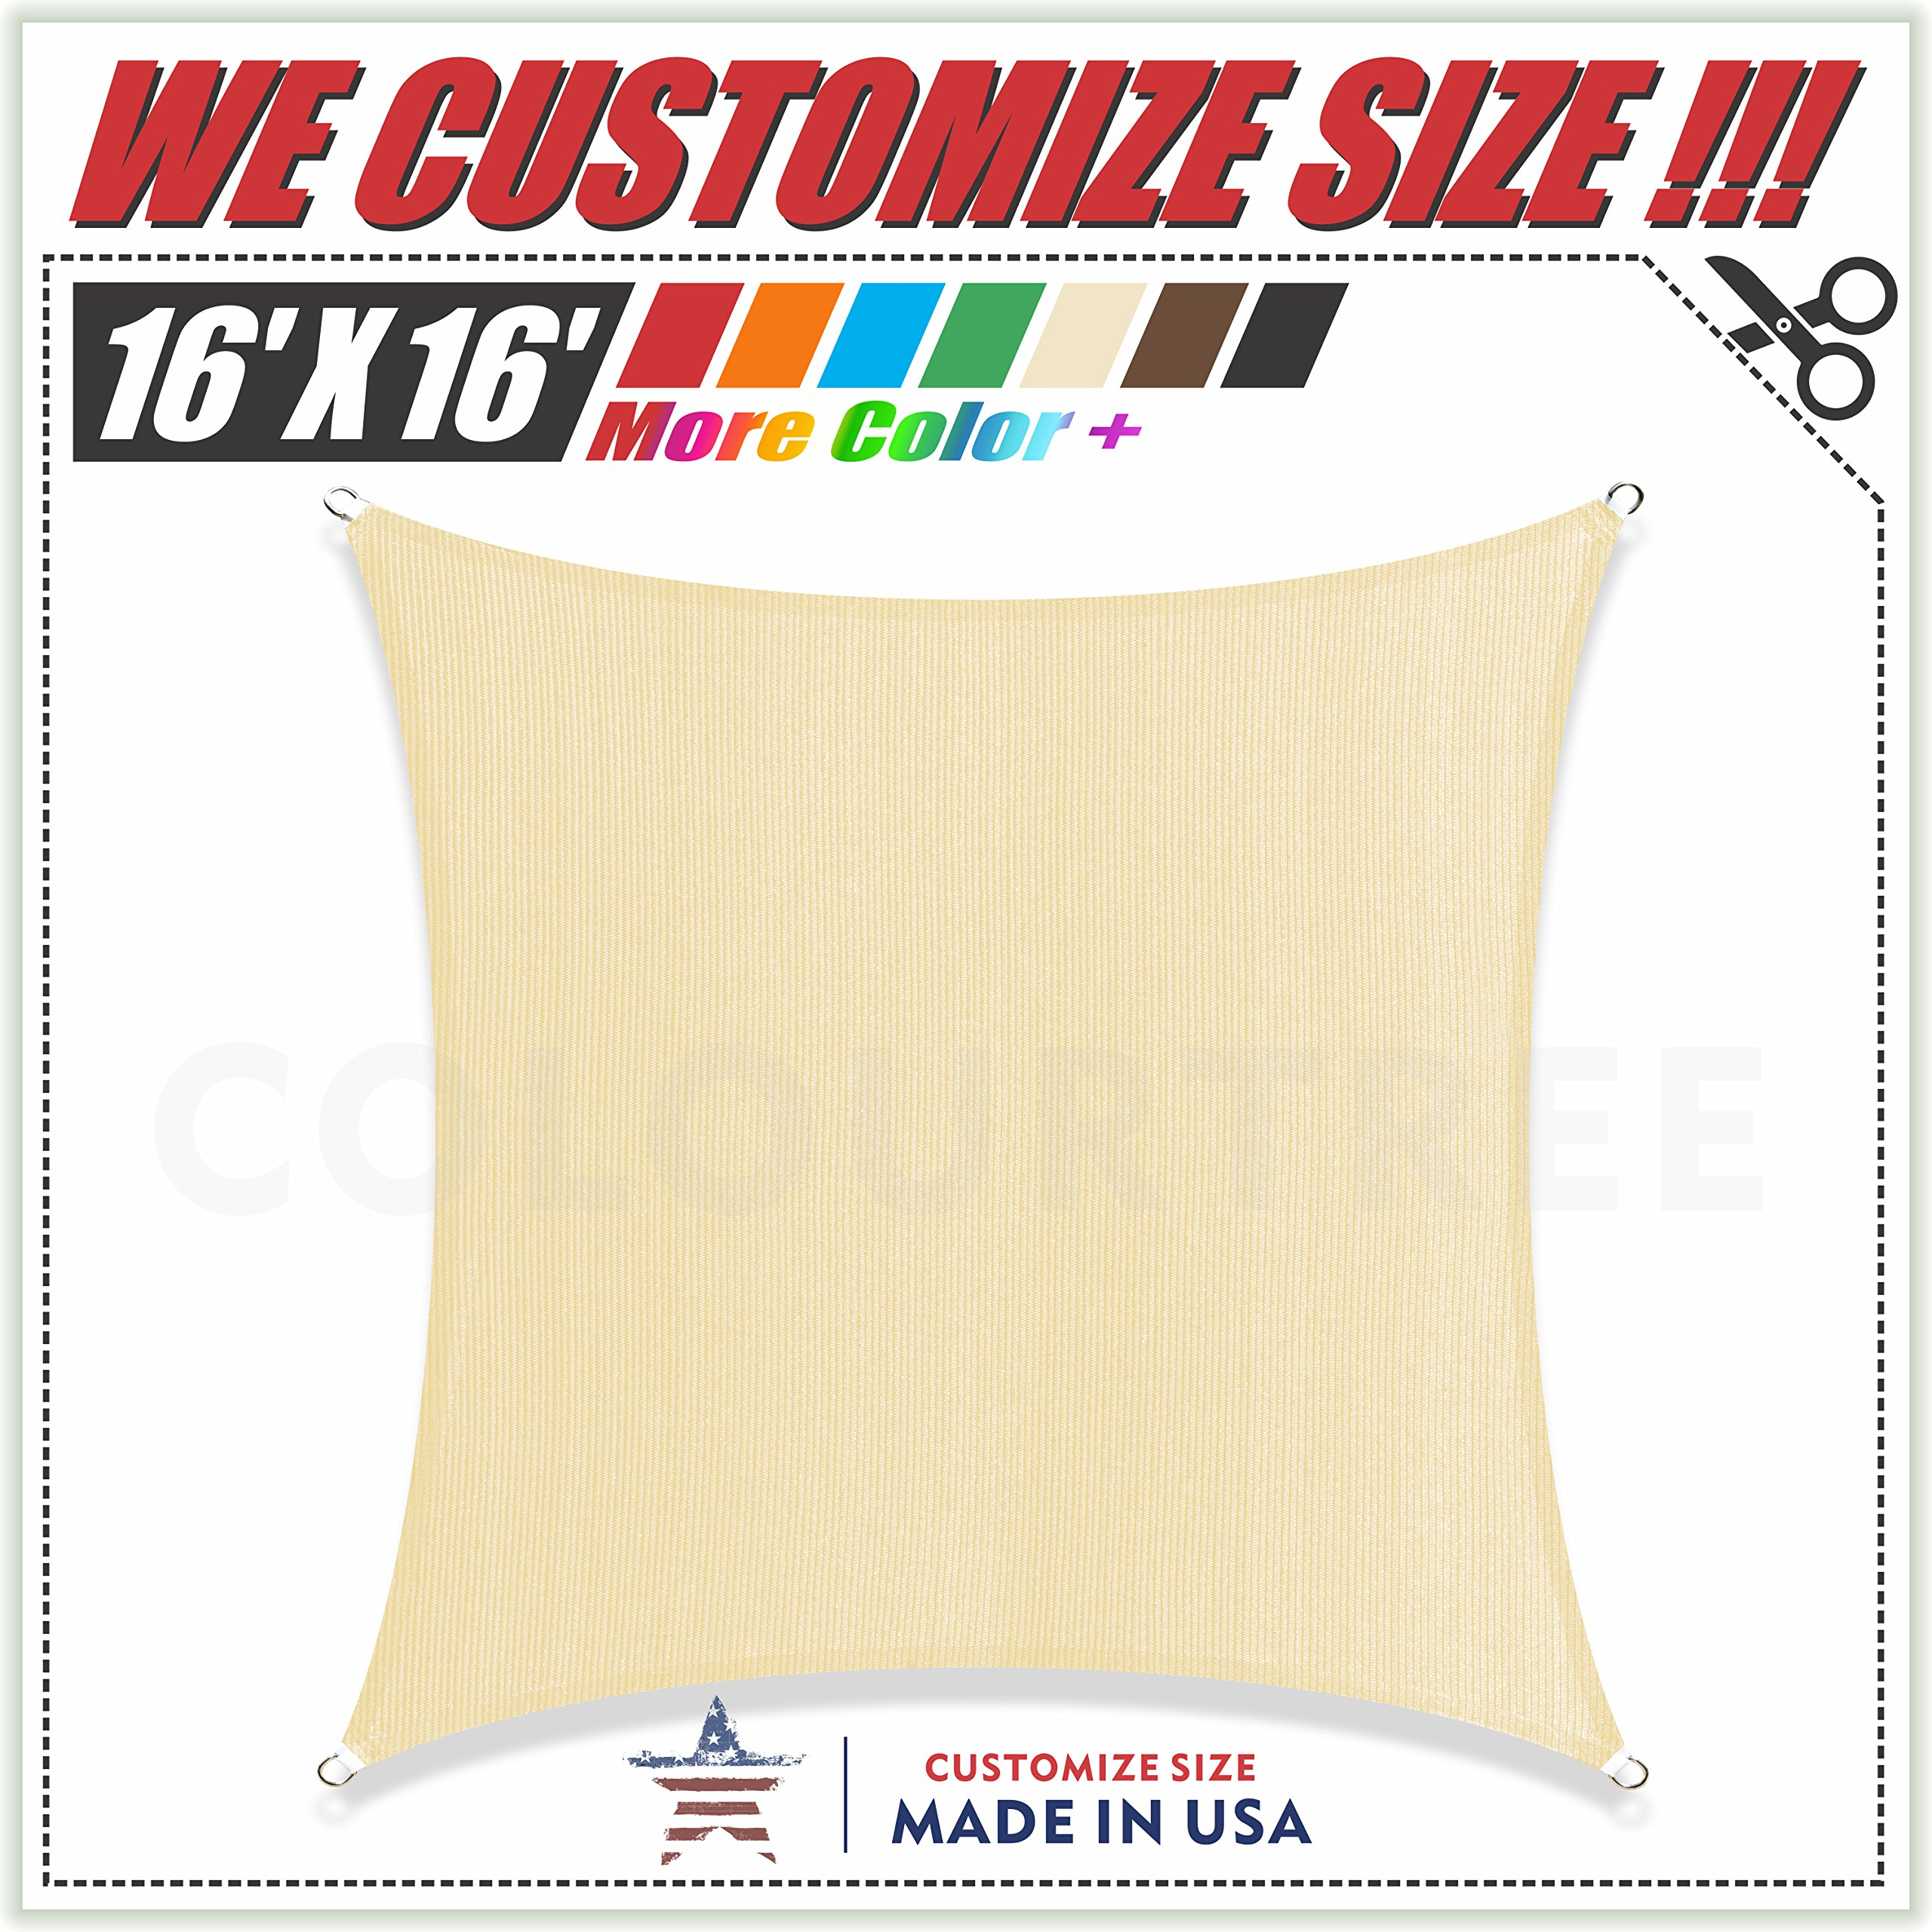 ColourTree 16' x 16' Beige Sun Shade Sail Canopy  Square, Commercial Standard Heavy Duty, We Make Custom Size by ColourTree